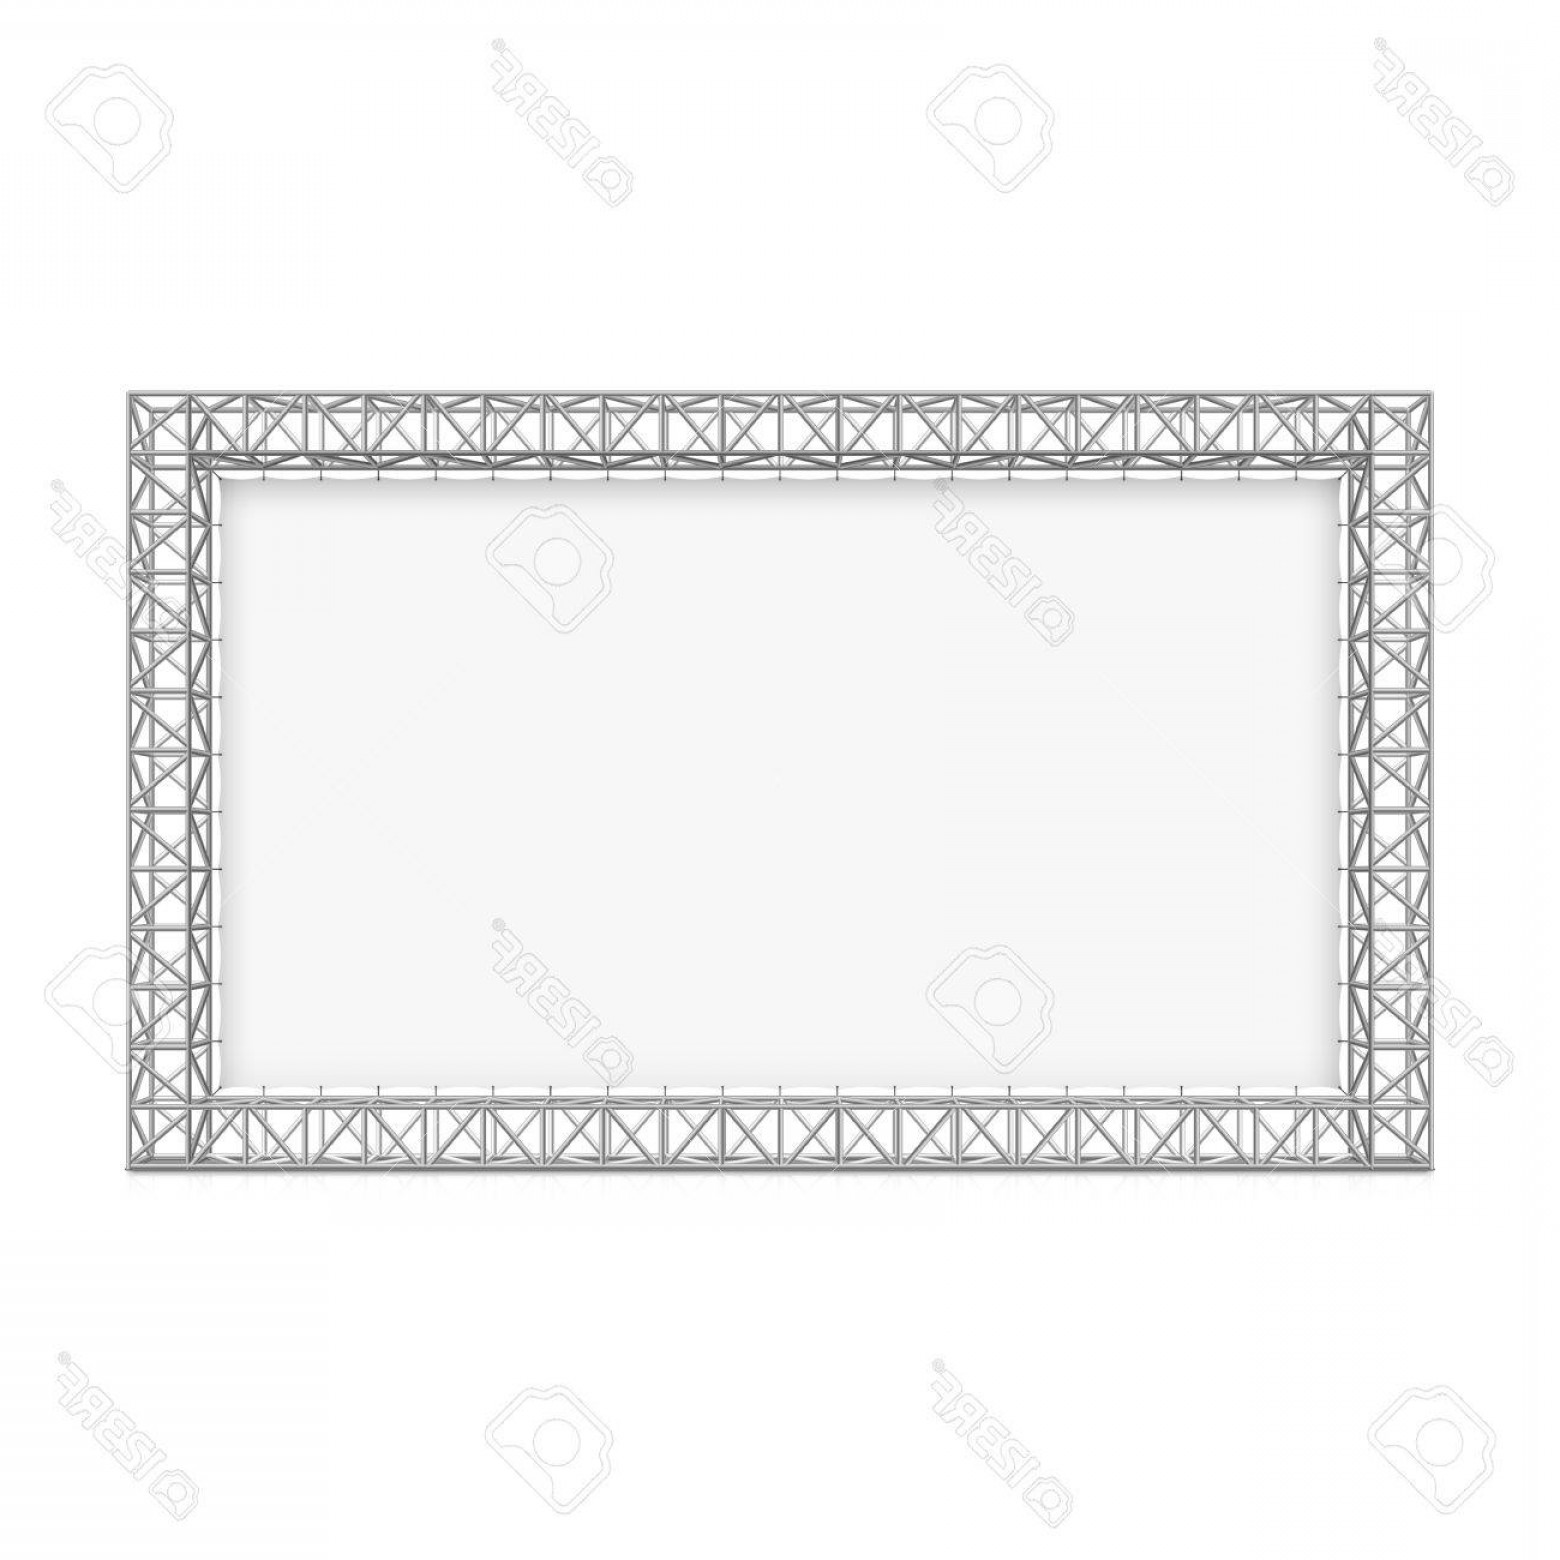 Aluminum Truss Design Vector: Photostock Vector Blank Advertising Outdoor Banner On Truss System